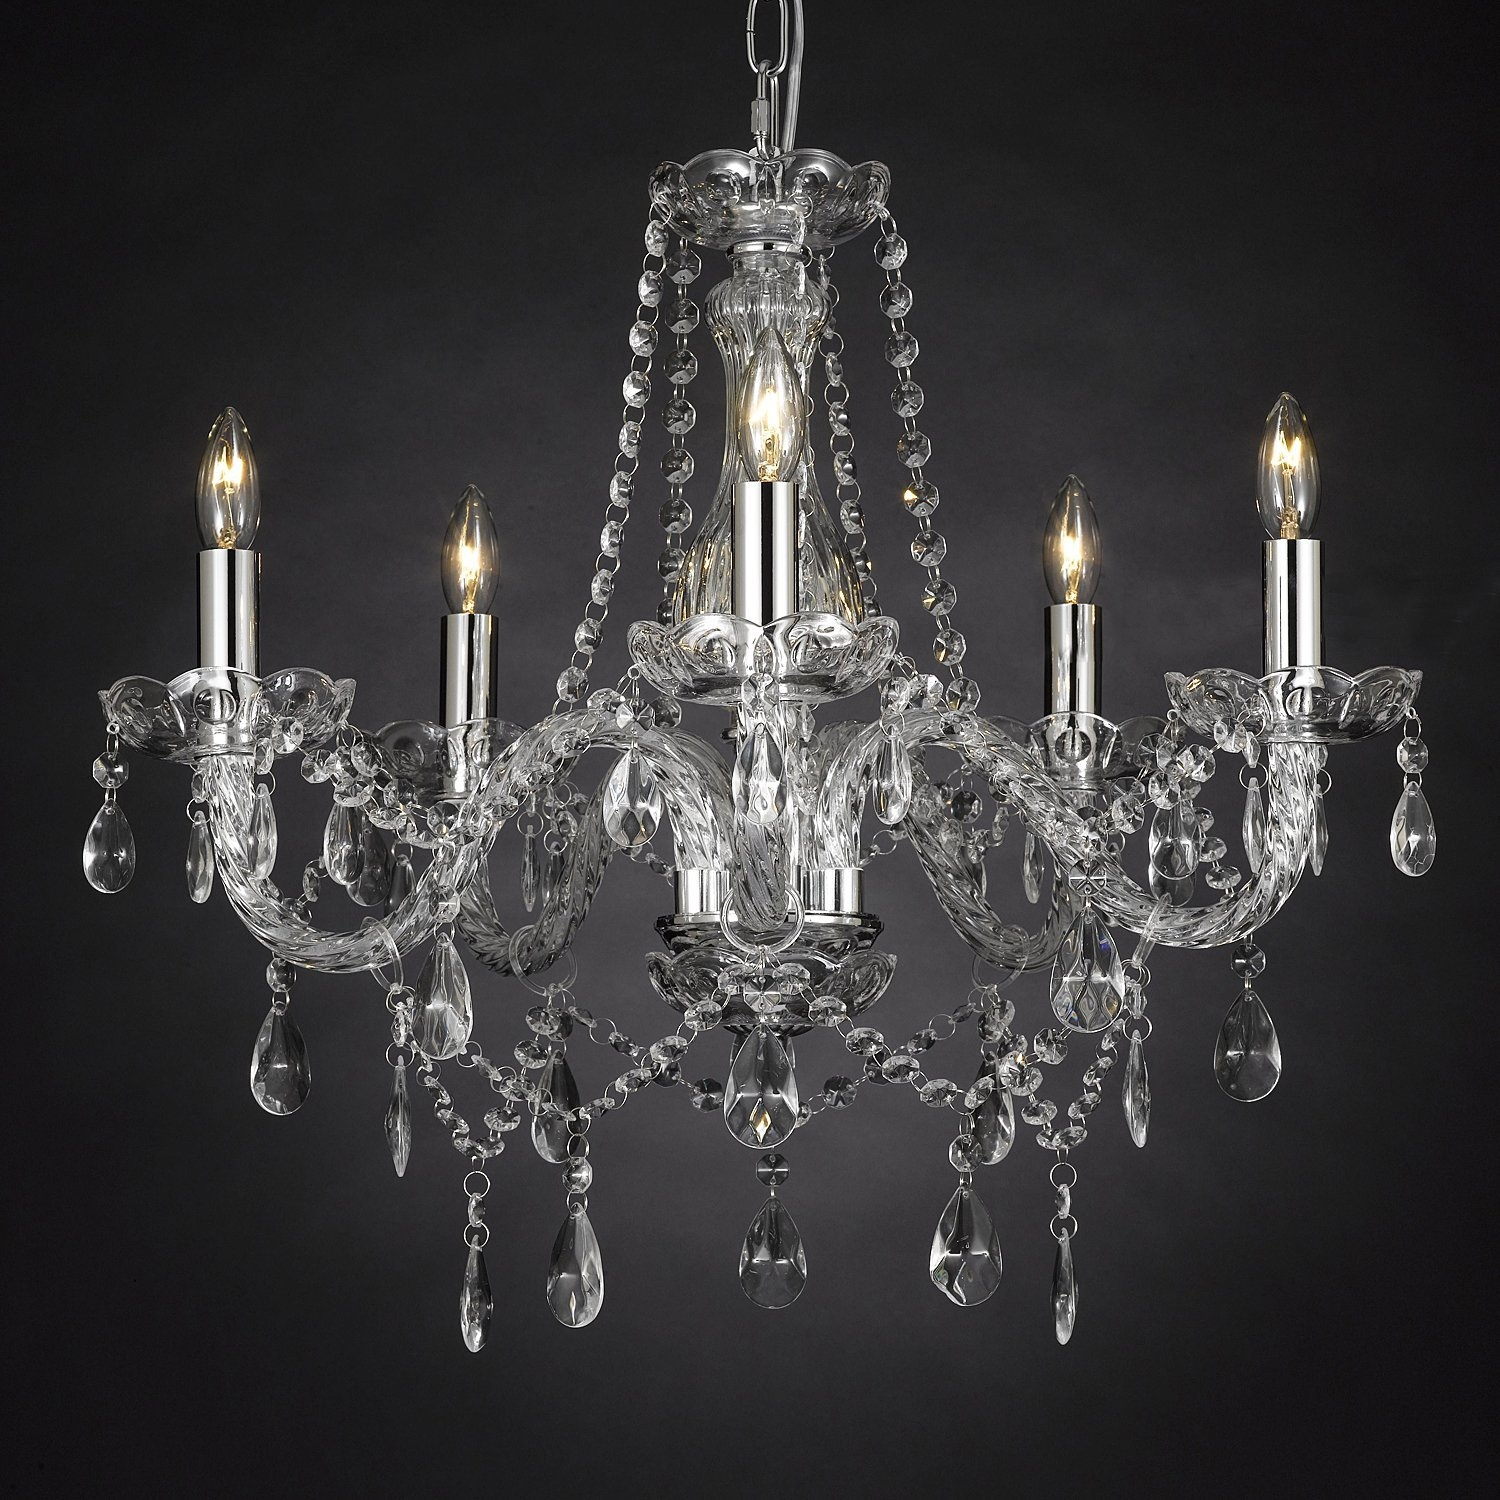 Lighting Wonderful Candle Chandelier Non Electric For Modern Throughout Cheap Faux Crystal Chandeliers (Image 20 of 25)